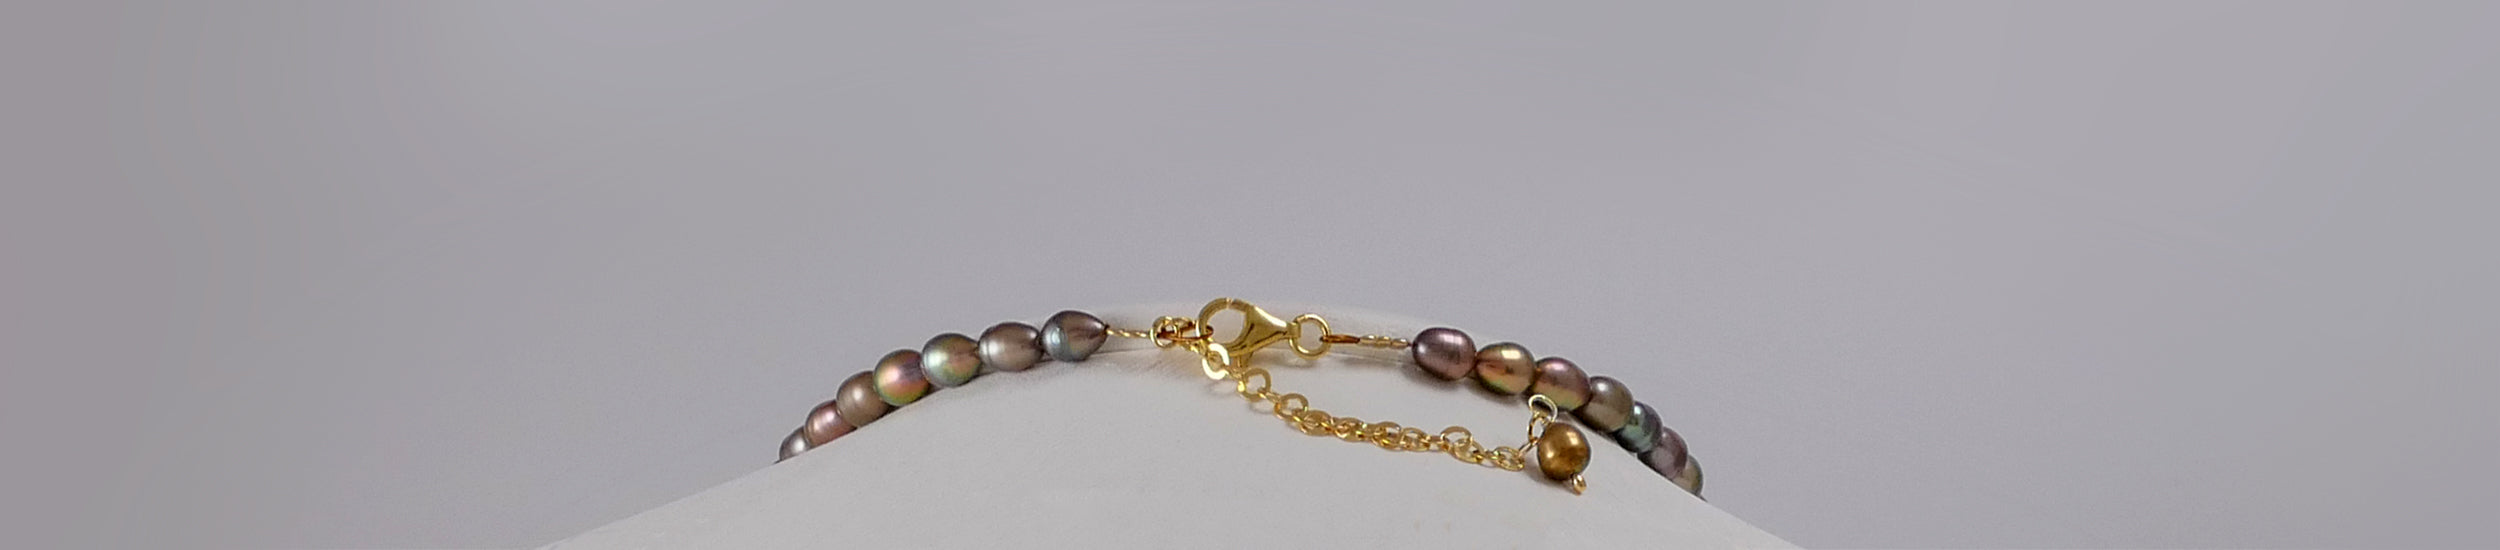 Resilience (I) w' Cultured Pearls - Katerina Roukouna